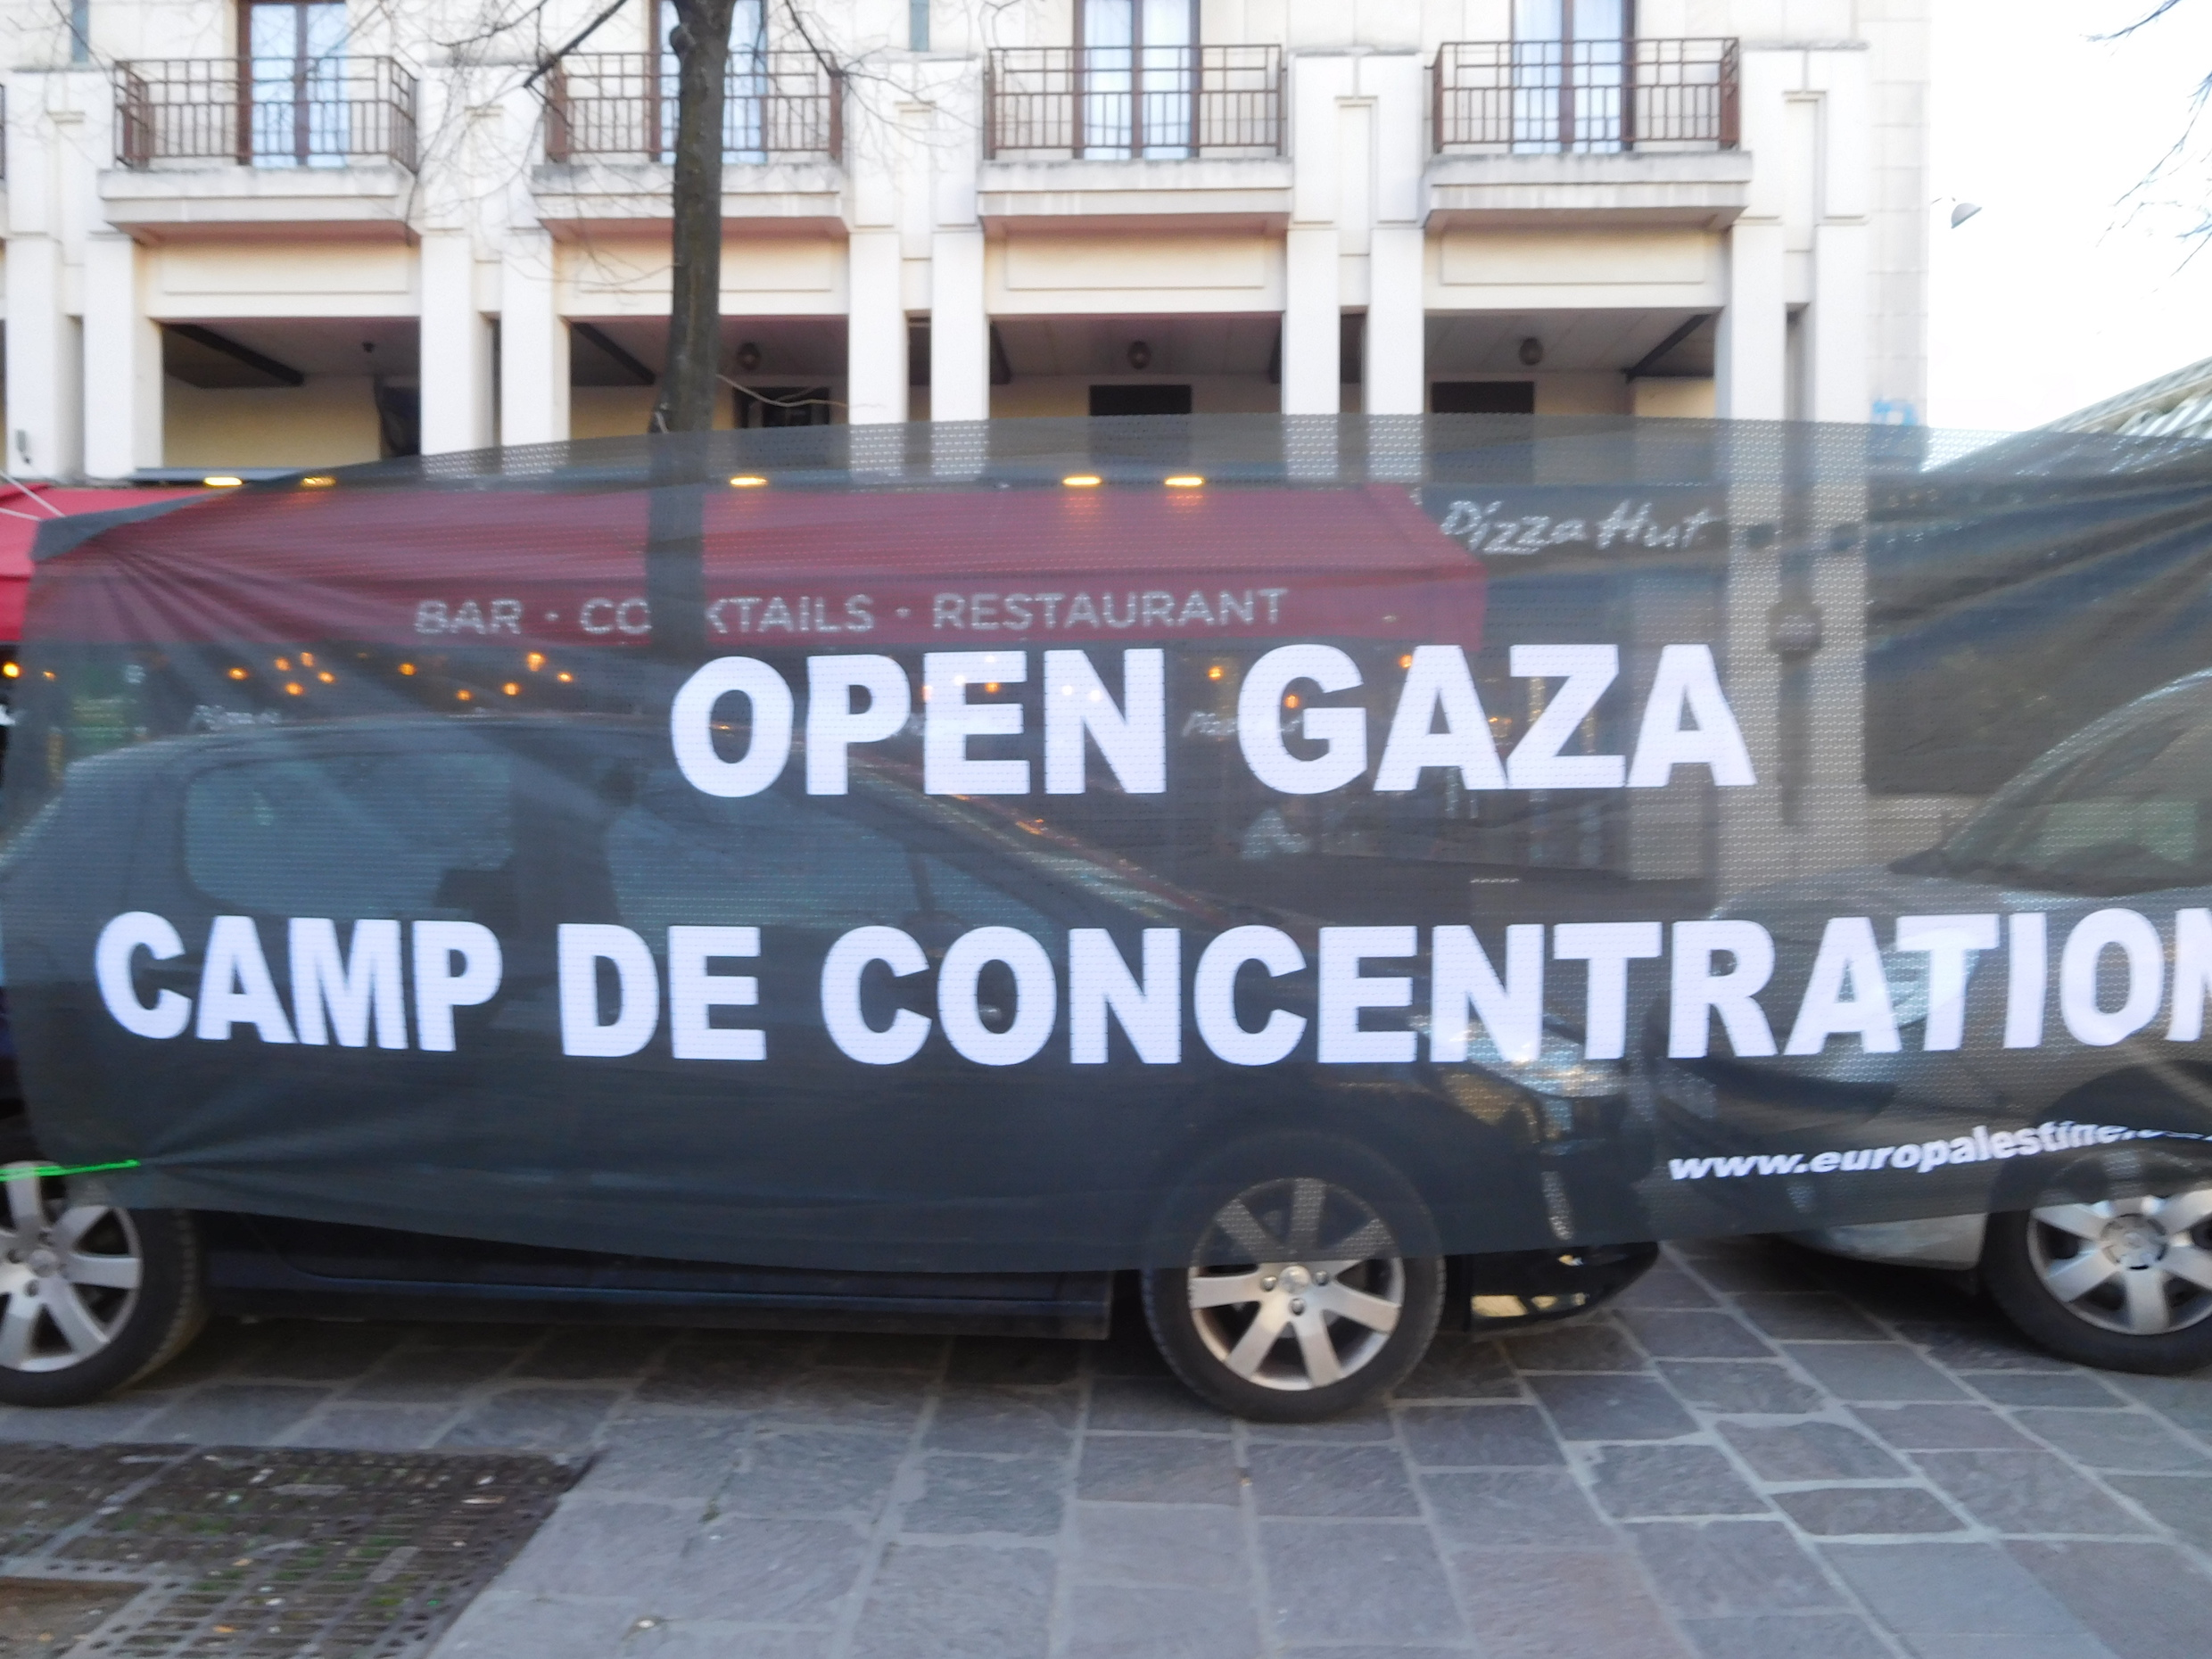 open_gaza_innocents.jpg